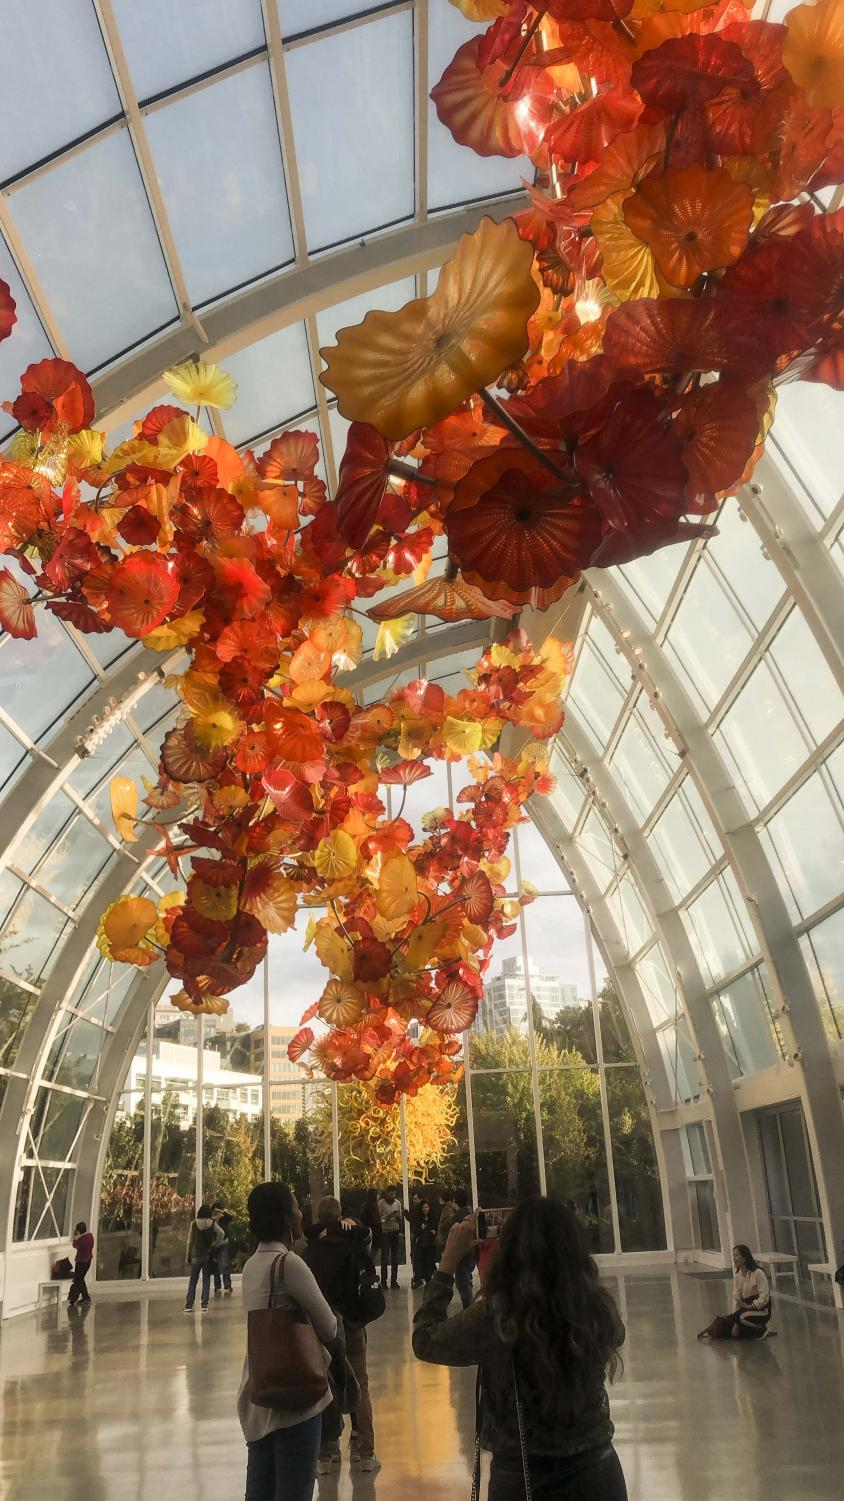 The Chihuly Garden and Glass exhibit located in the Seattle Center. There will be winter festivities held here every Sunday leading up to Dec. 25.